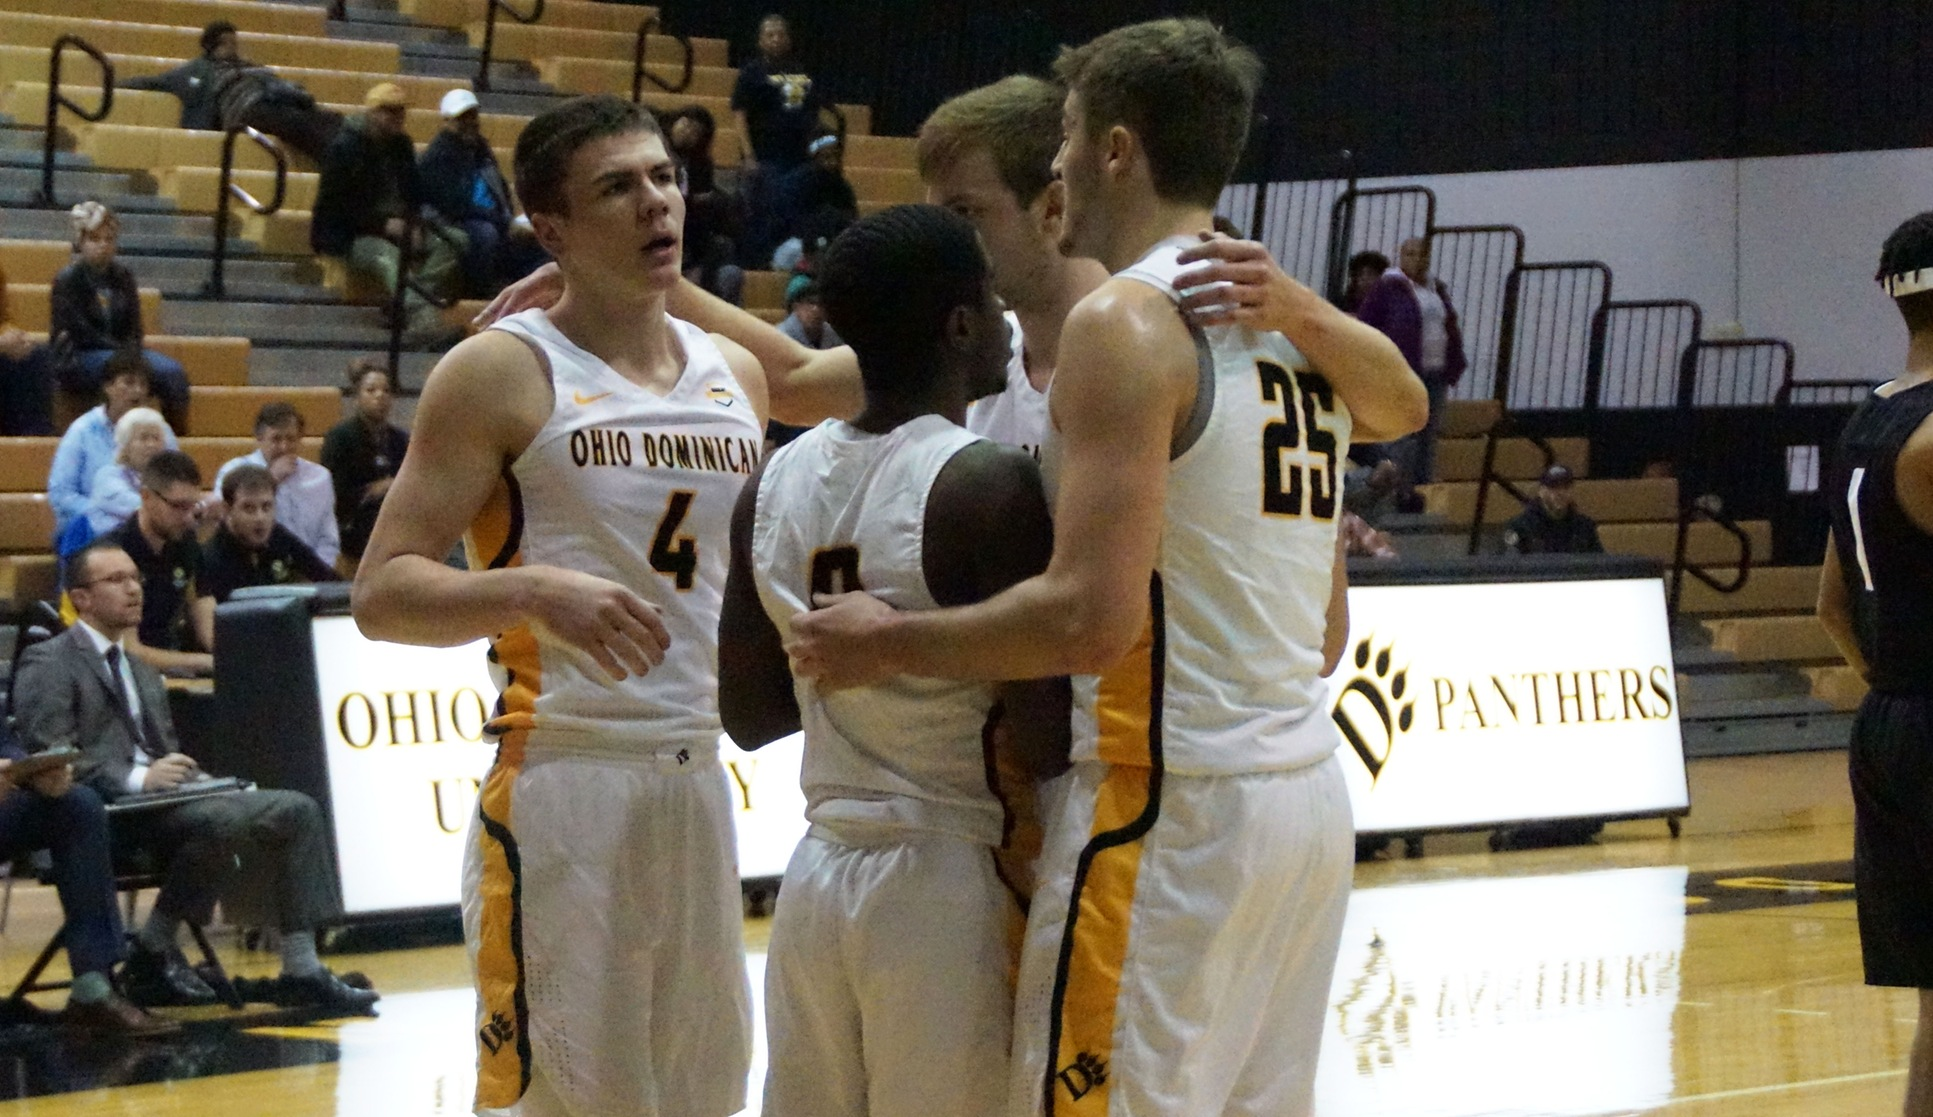 Trip South To Davis & Elkins, Alderson Broaddus Ahead For Men's Basketball